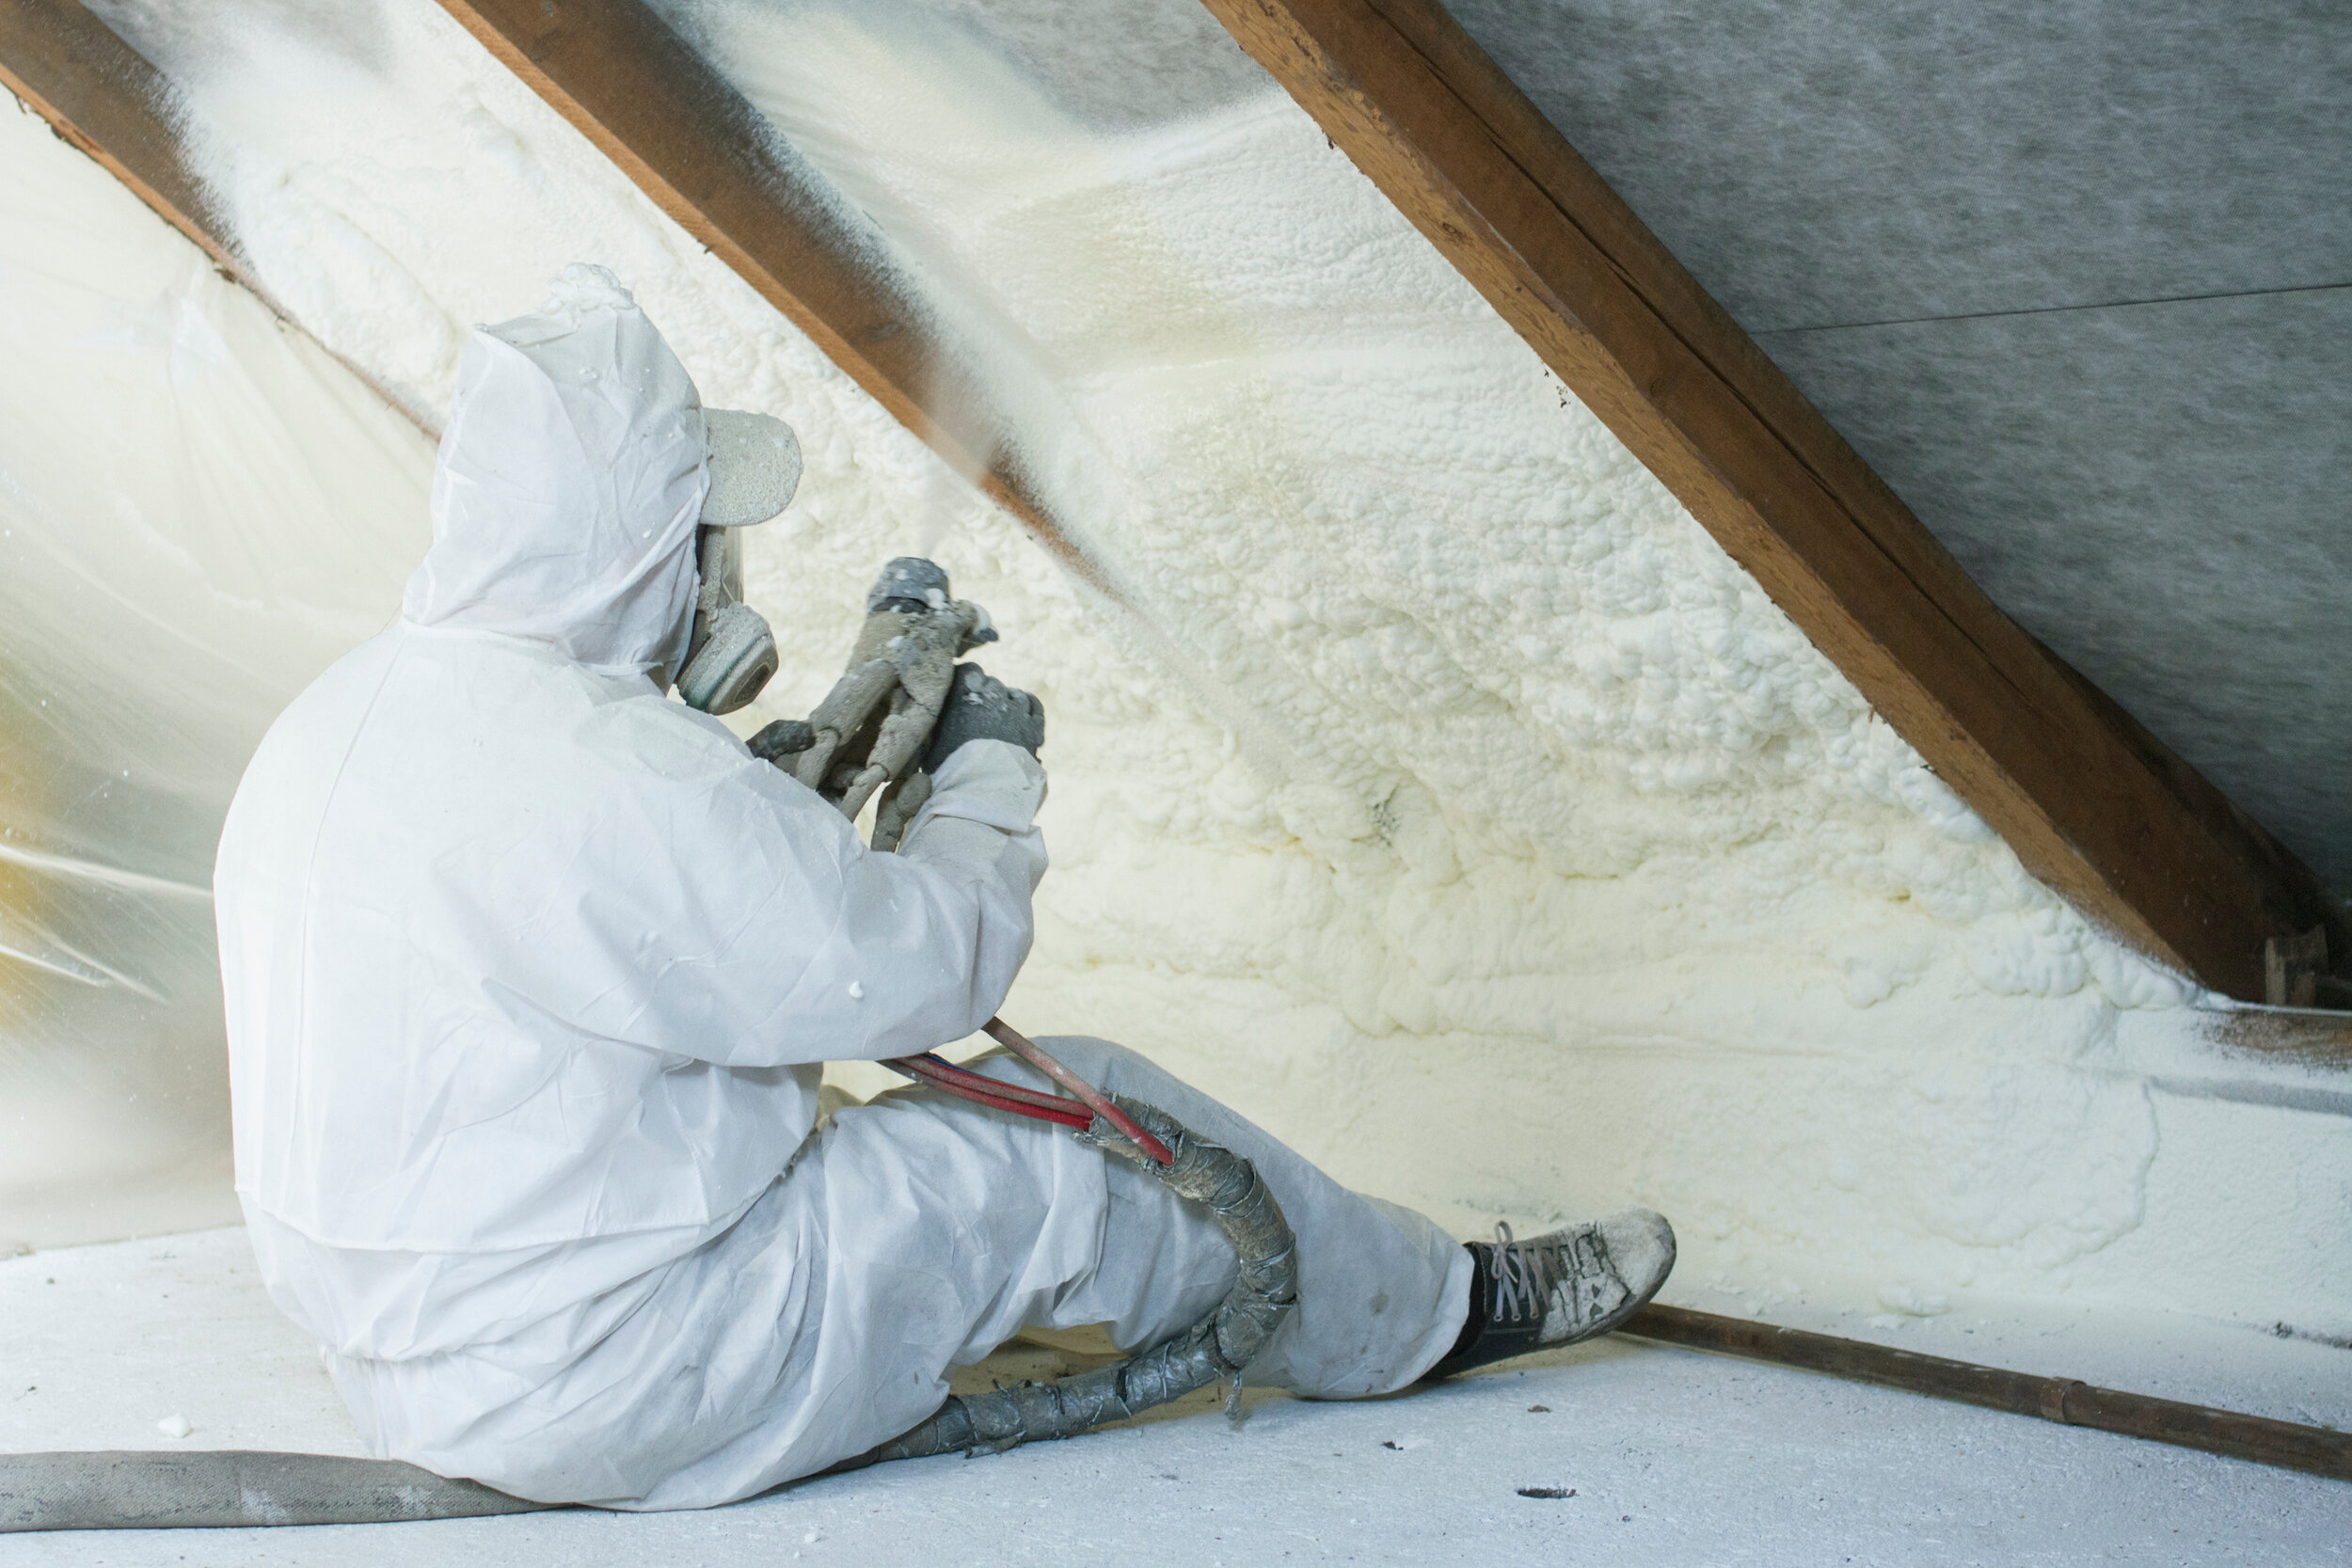 The Cost Of Keeping Warm Best Home Insulation Types Build With A Bang